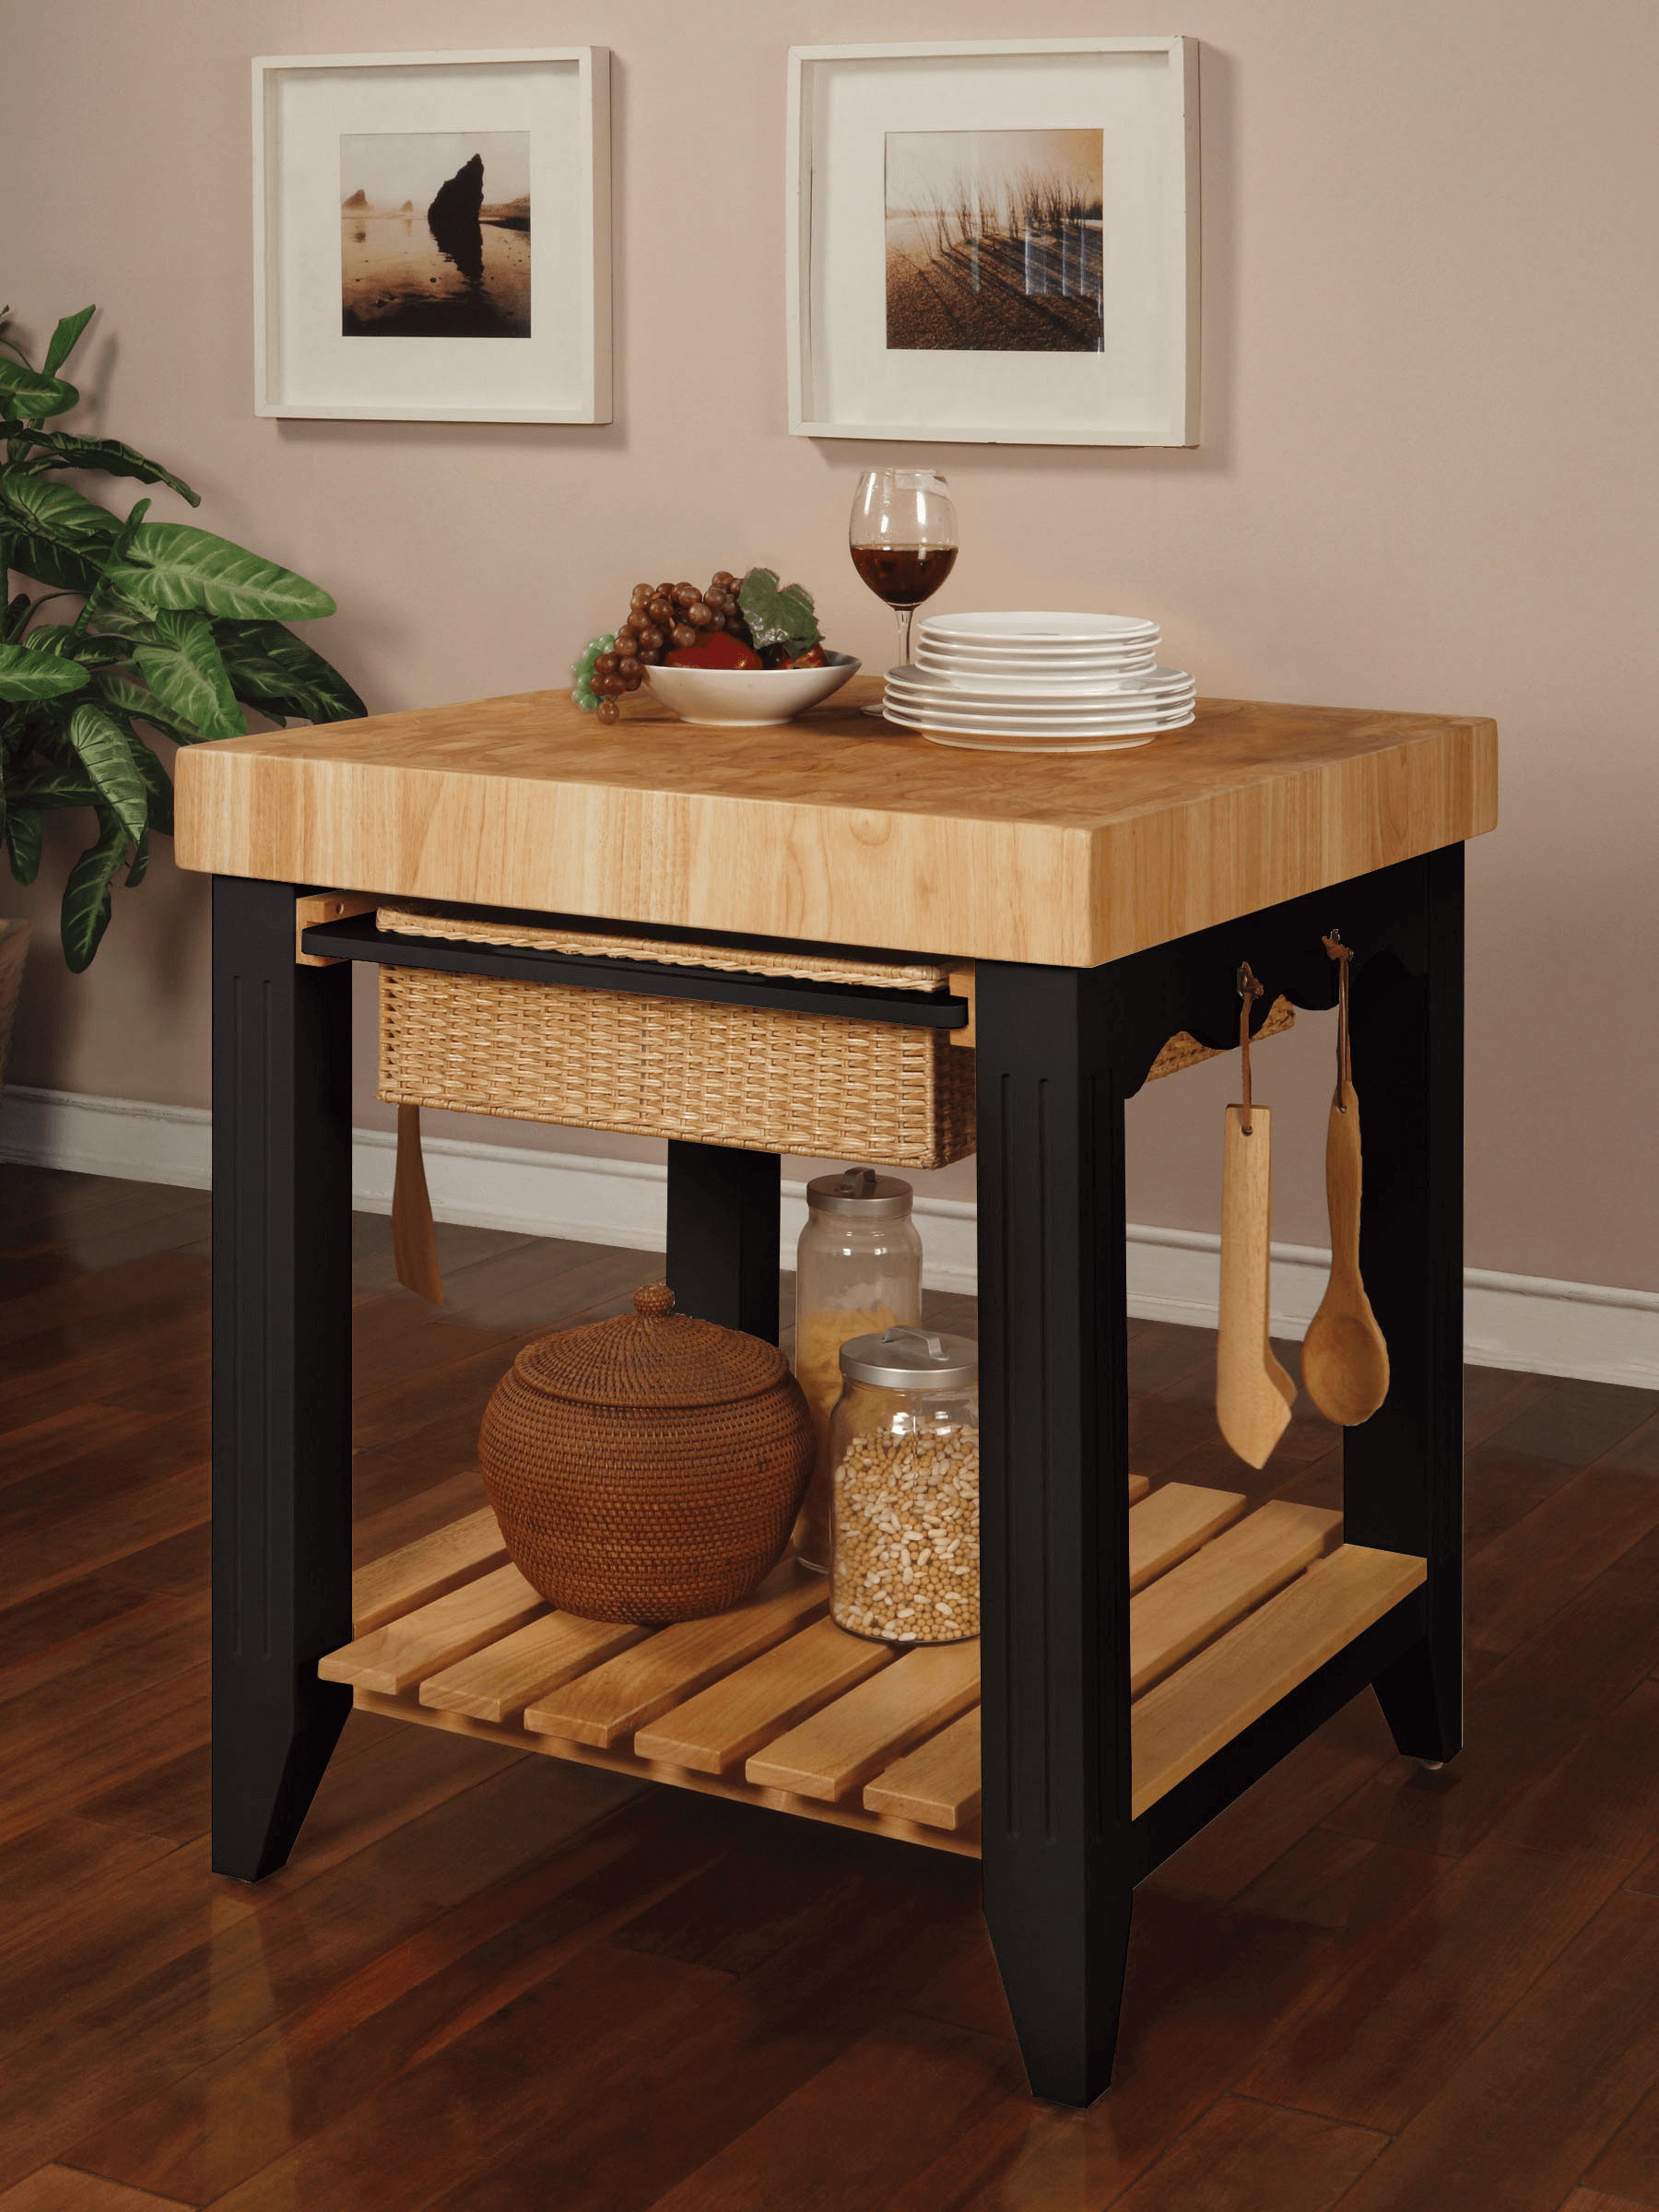 Black leg kitchen island butcher block top with cart in small design